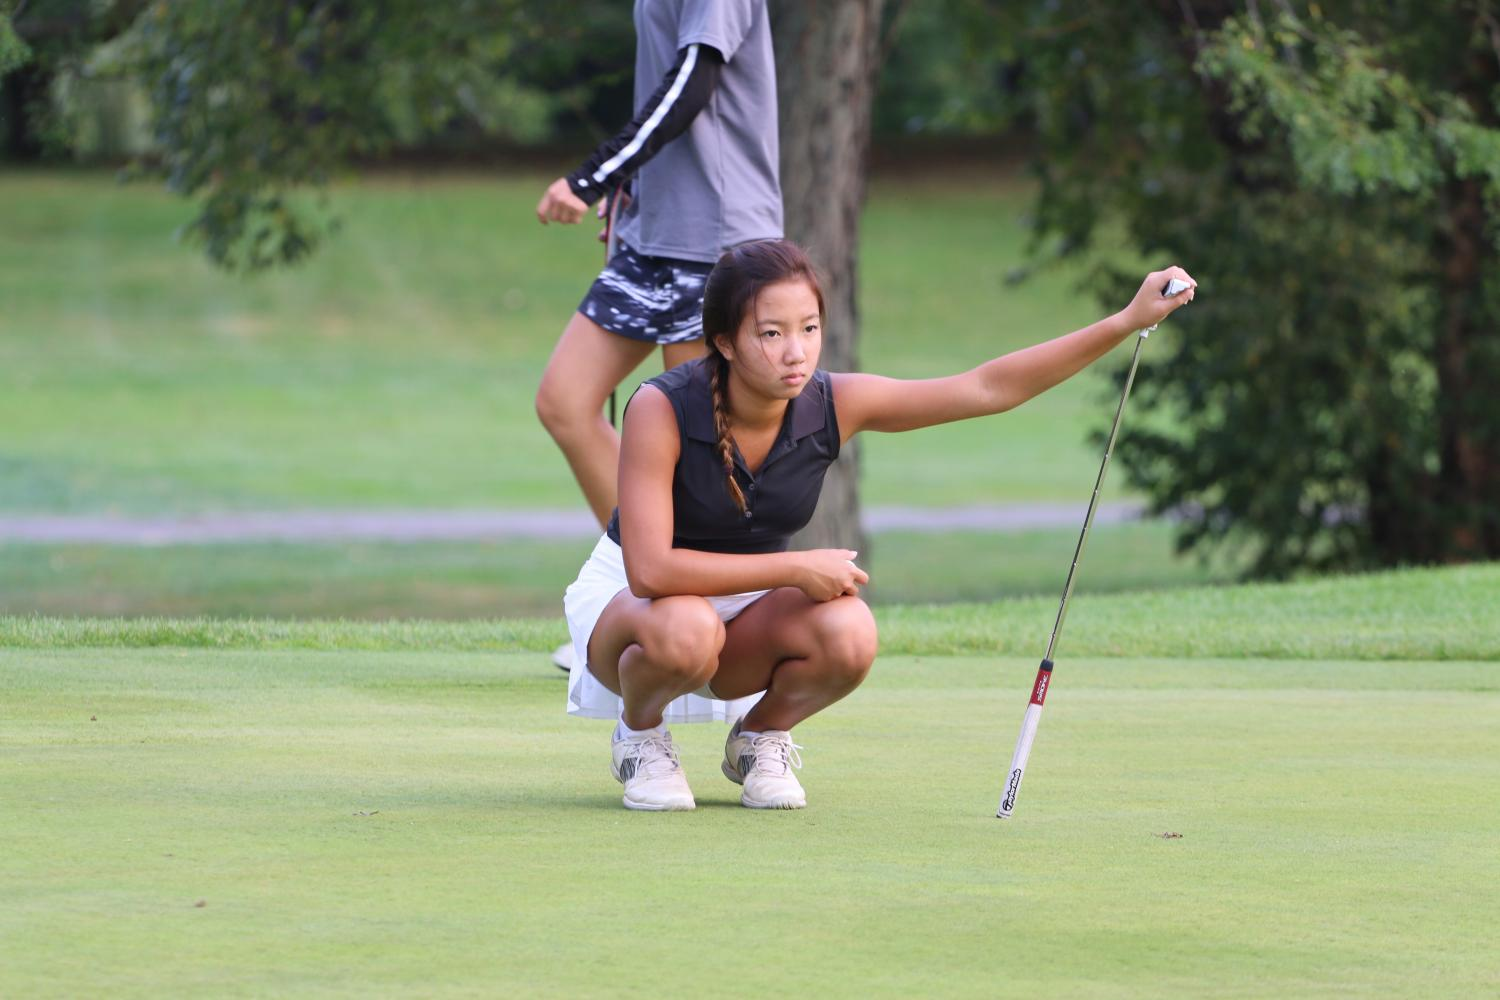 Varsity+Girls+Golf+loses+their+5th+match+against+New+Trier+with+a+score+of+224-154.